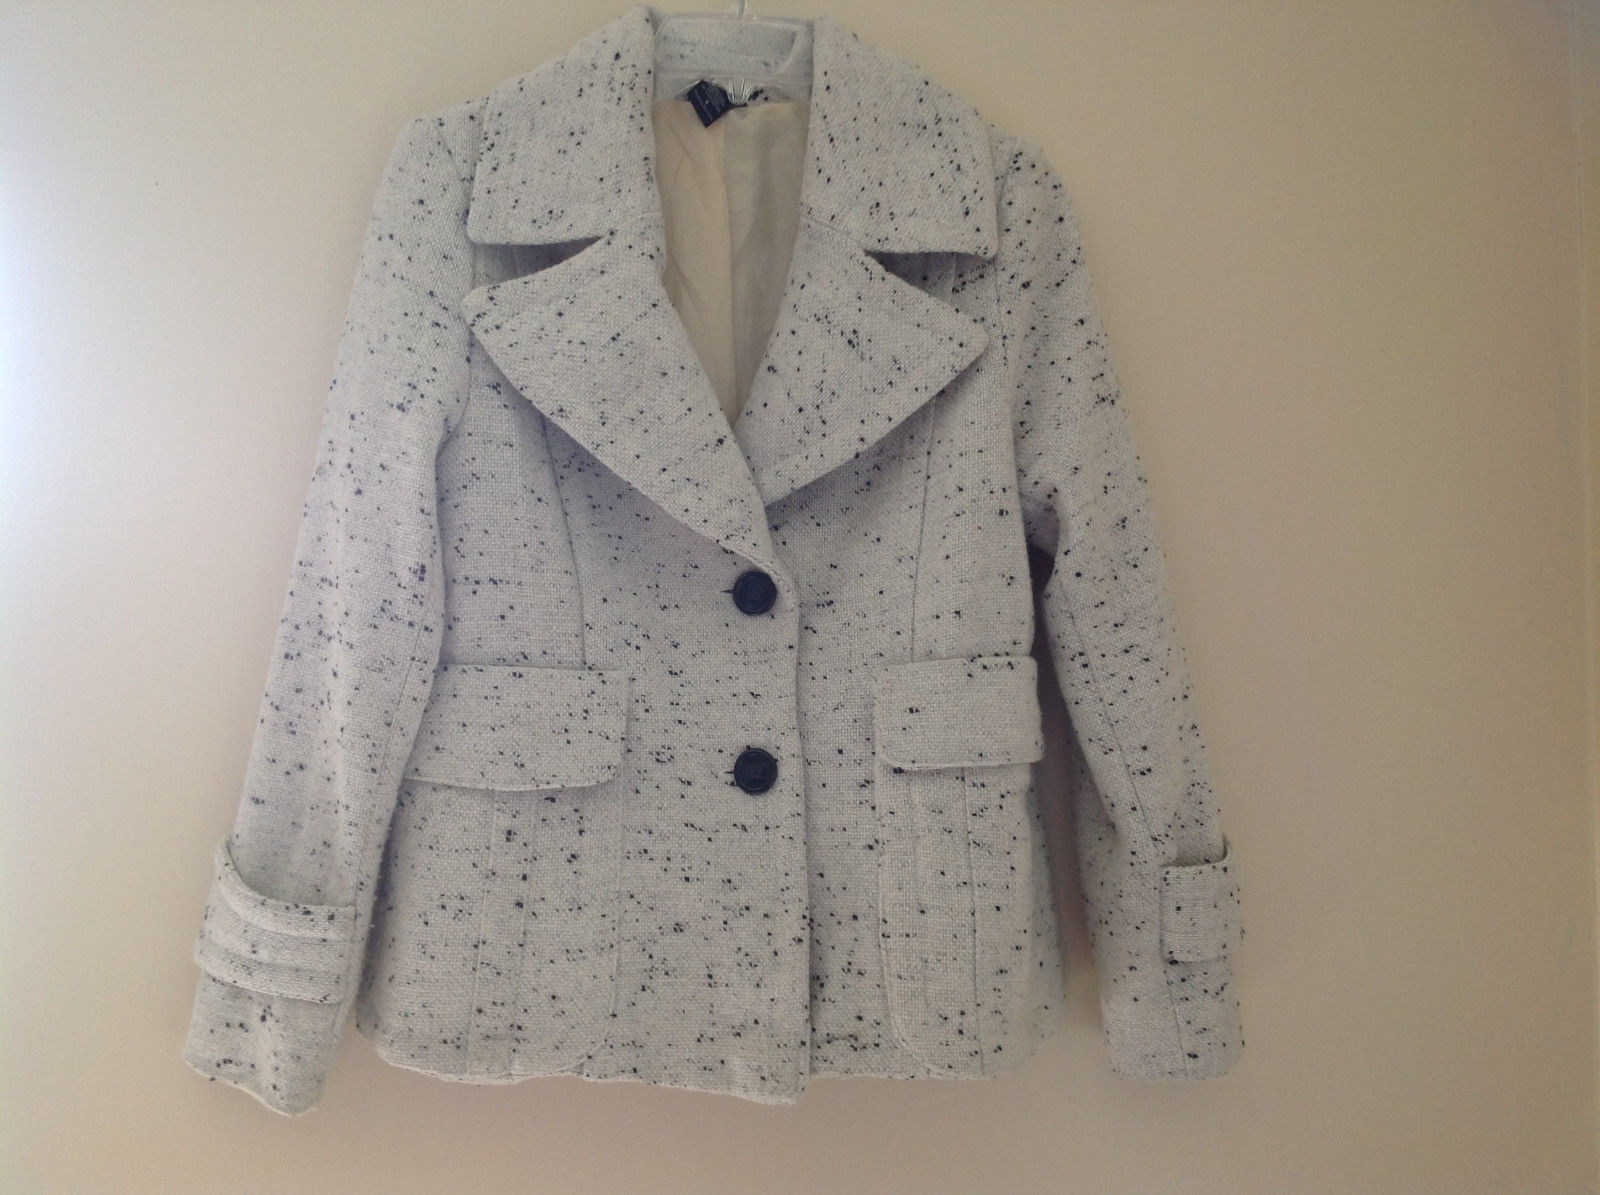 Robert Louis White Black Speckled Double Button Light Winter Peacoat Size S